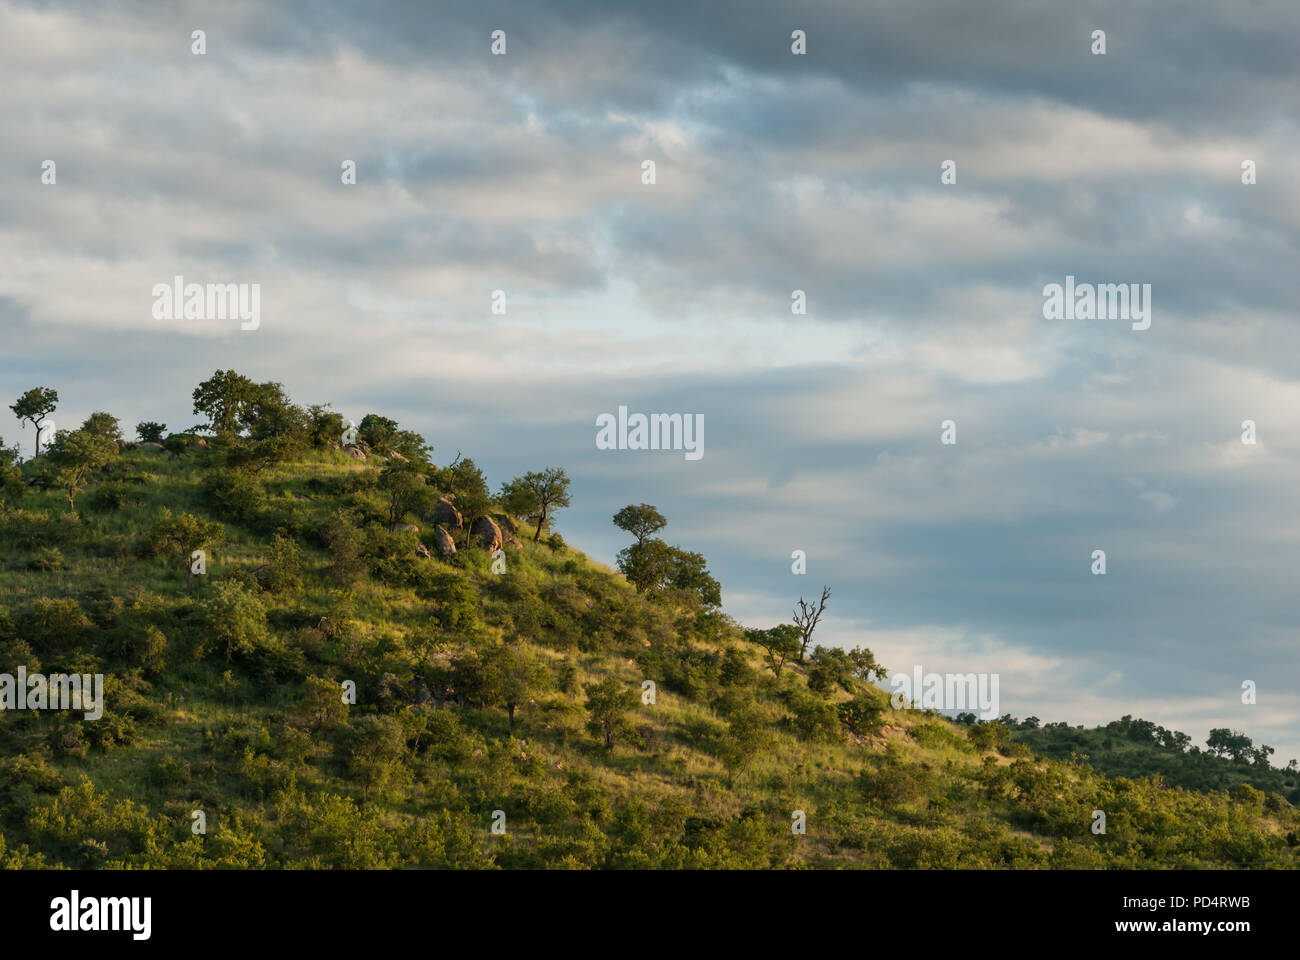 African bushveld hill in evening sun light with soft cloudy sky, space for text, South Africa - Stock Image